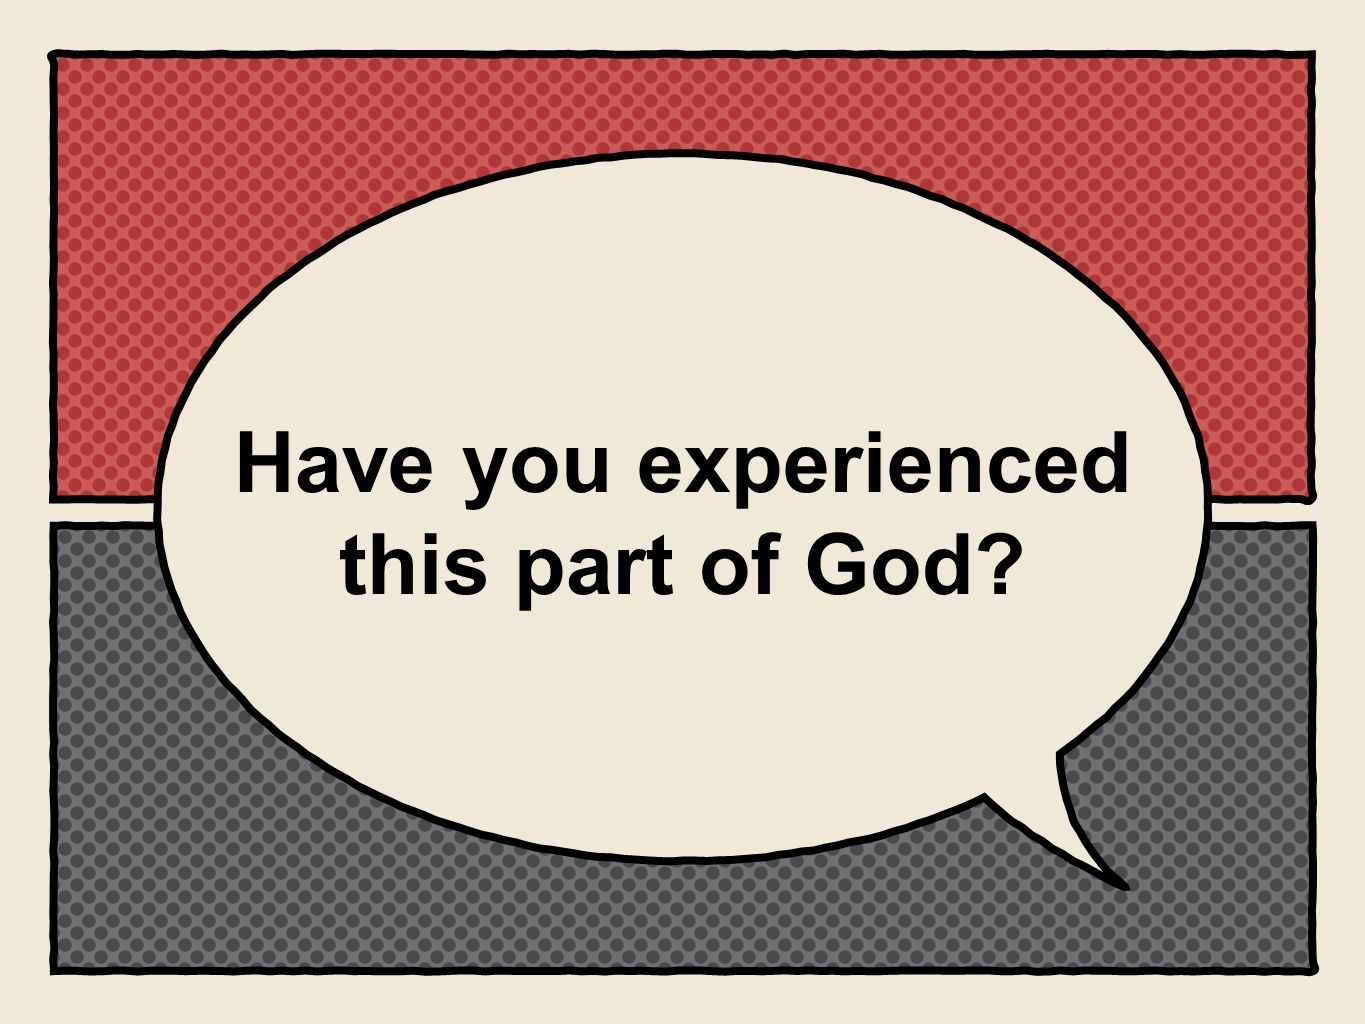 Have you experienced this part of God?